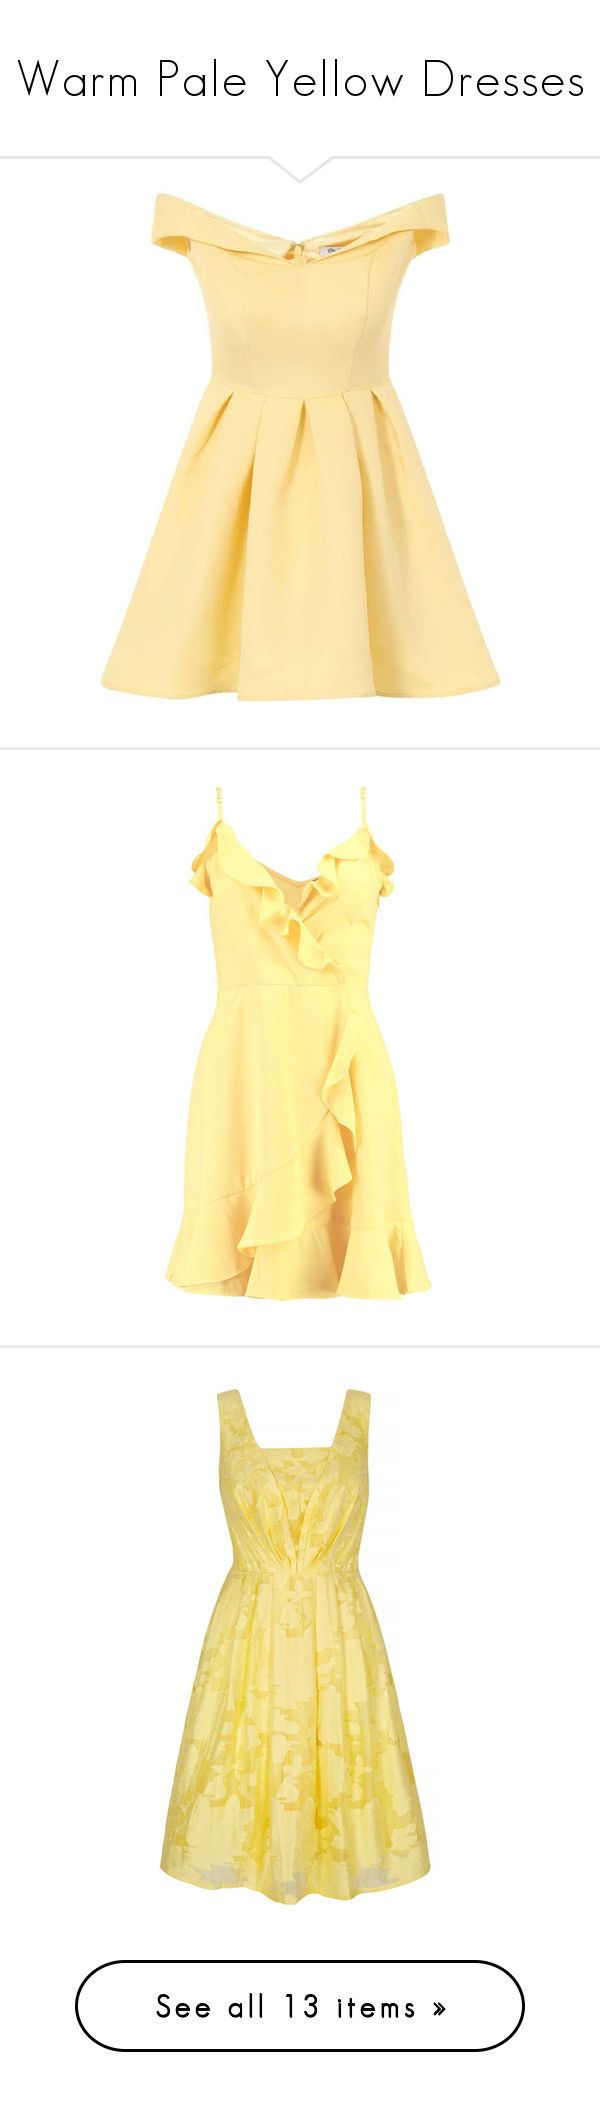 """""""Warm Pale Yellow Dresses"""" by tegan-b-riley on Polyvore featuring dresses, yellow dresses, yellow, pleated dresses, pleated midi dress, fitted tops, midi cocktail dress, calf length dresses, party dresses and midi wrap dress"""